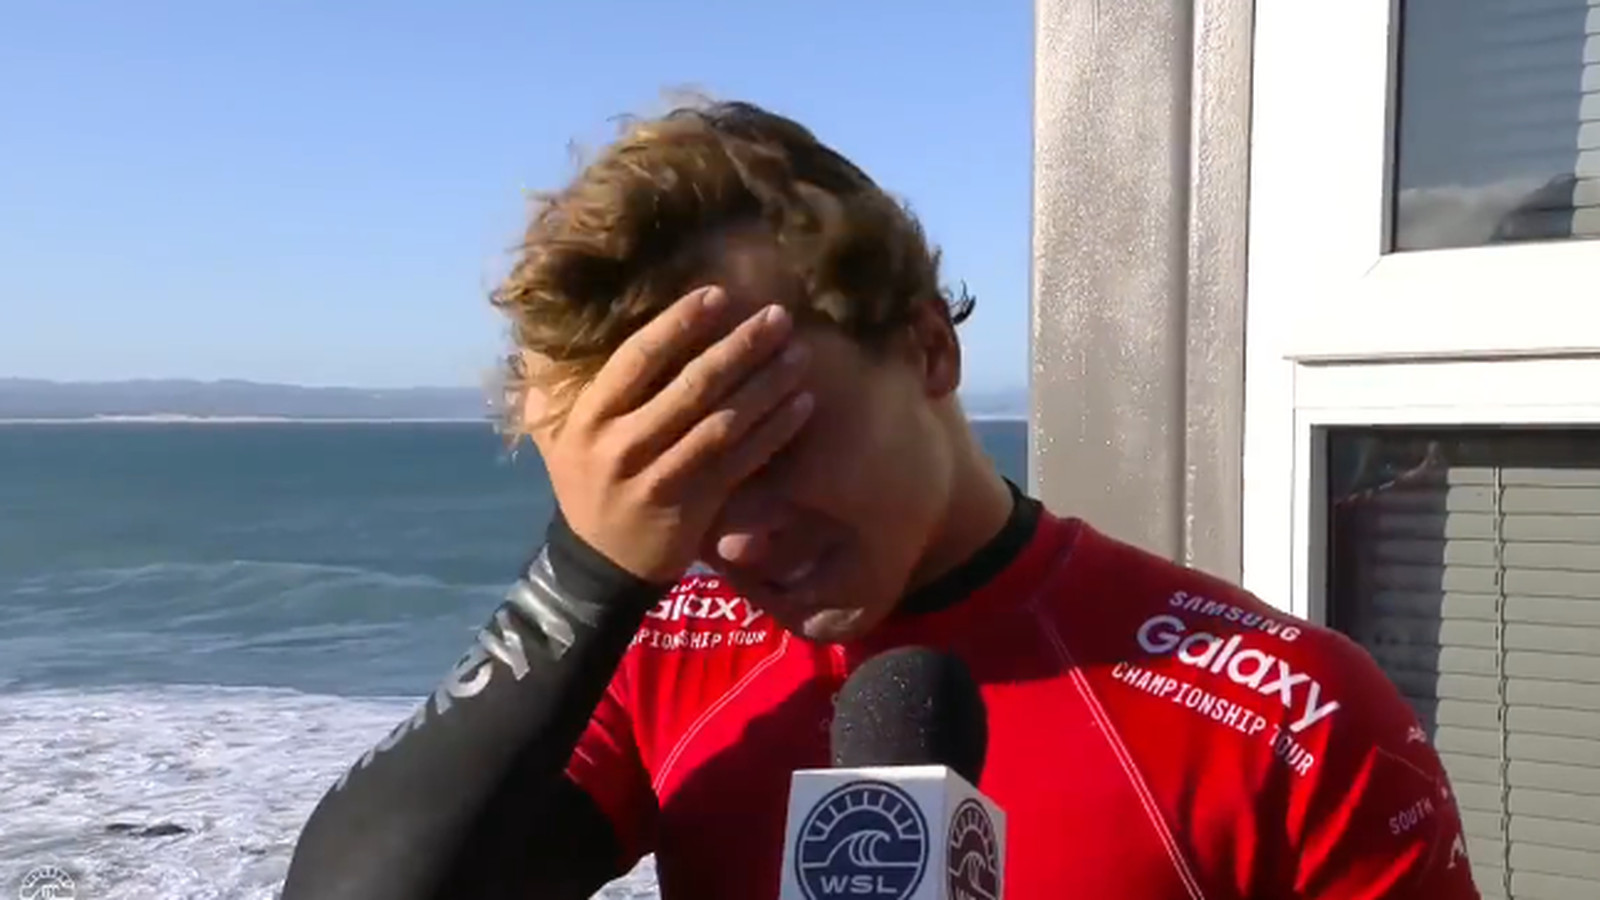 Surfer Mick Fanning on shark attack: Bonus-Codes bwin 'Somebody was looking out for me ... Empfehlungscode bwin bwin 2013